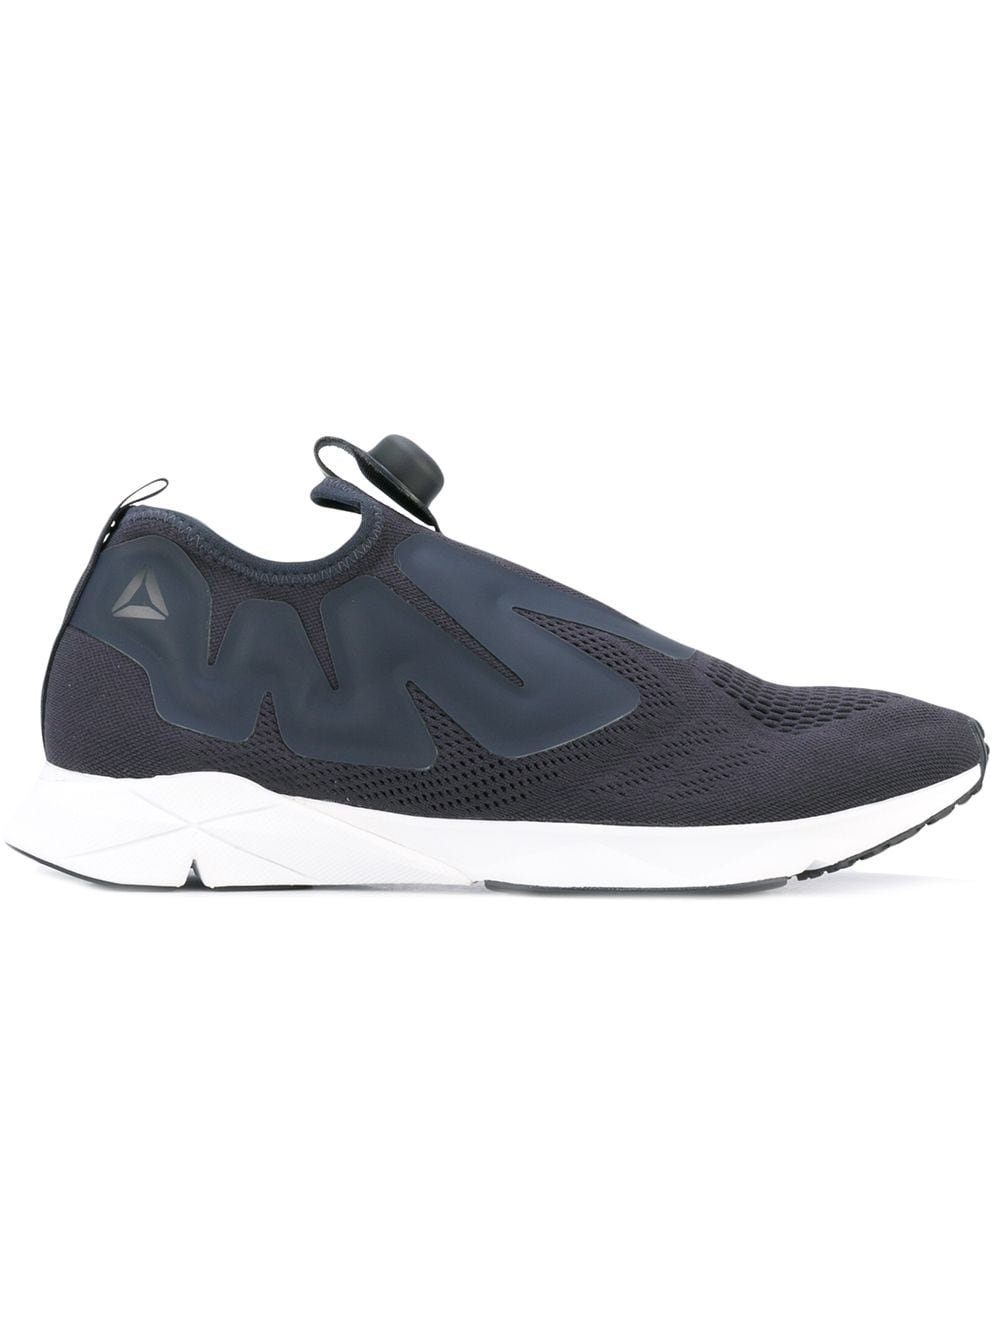 Reebok Supreme Engine sneakers - Blue von Reebok